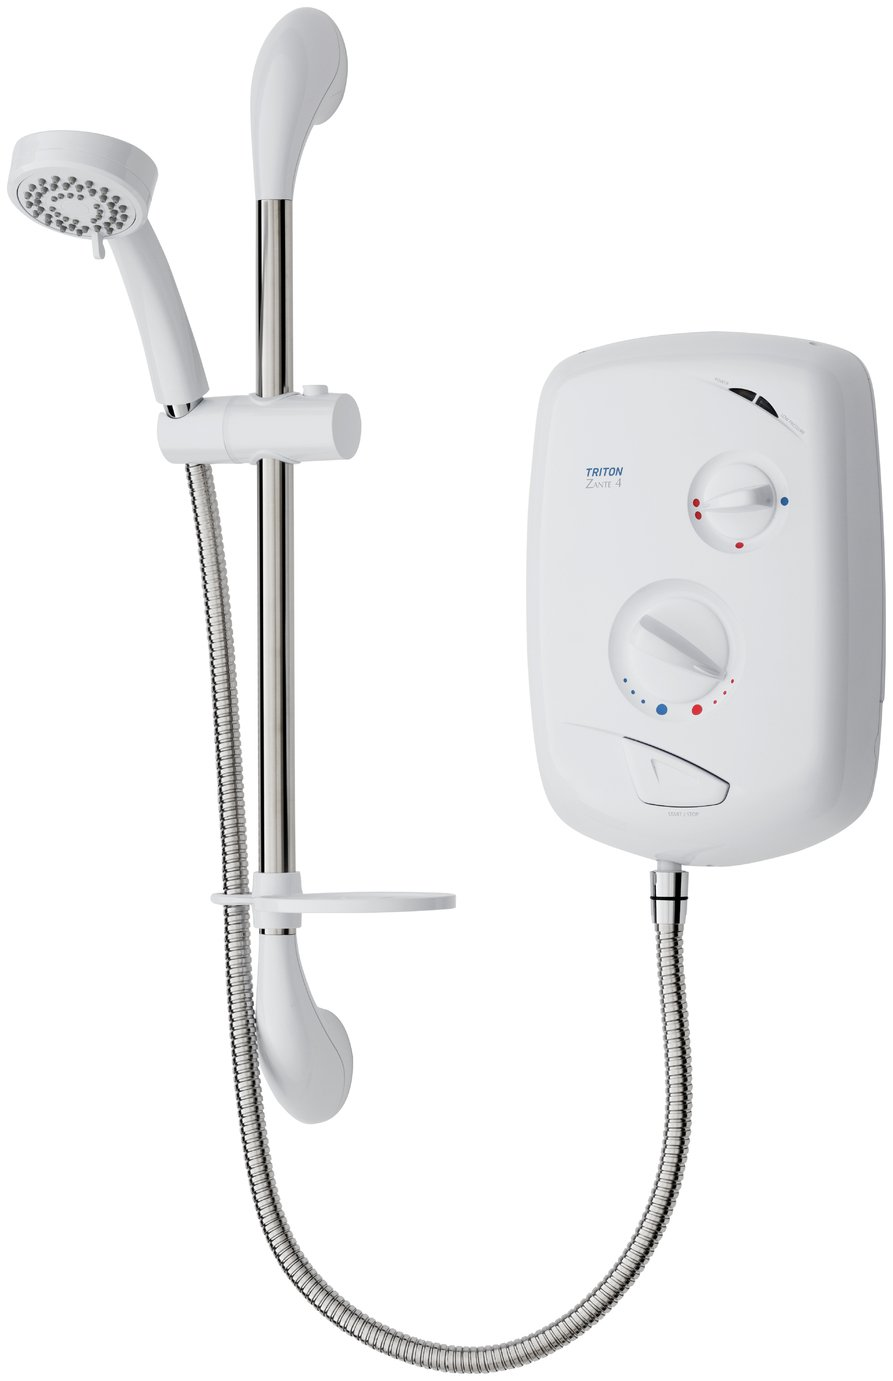 Triton Zante 4 8.5kW Electric Shower - White